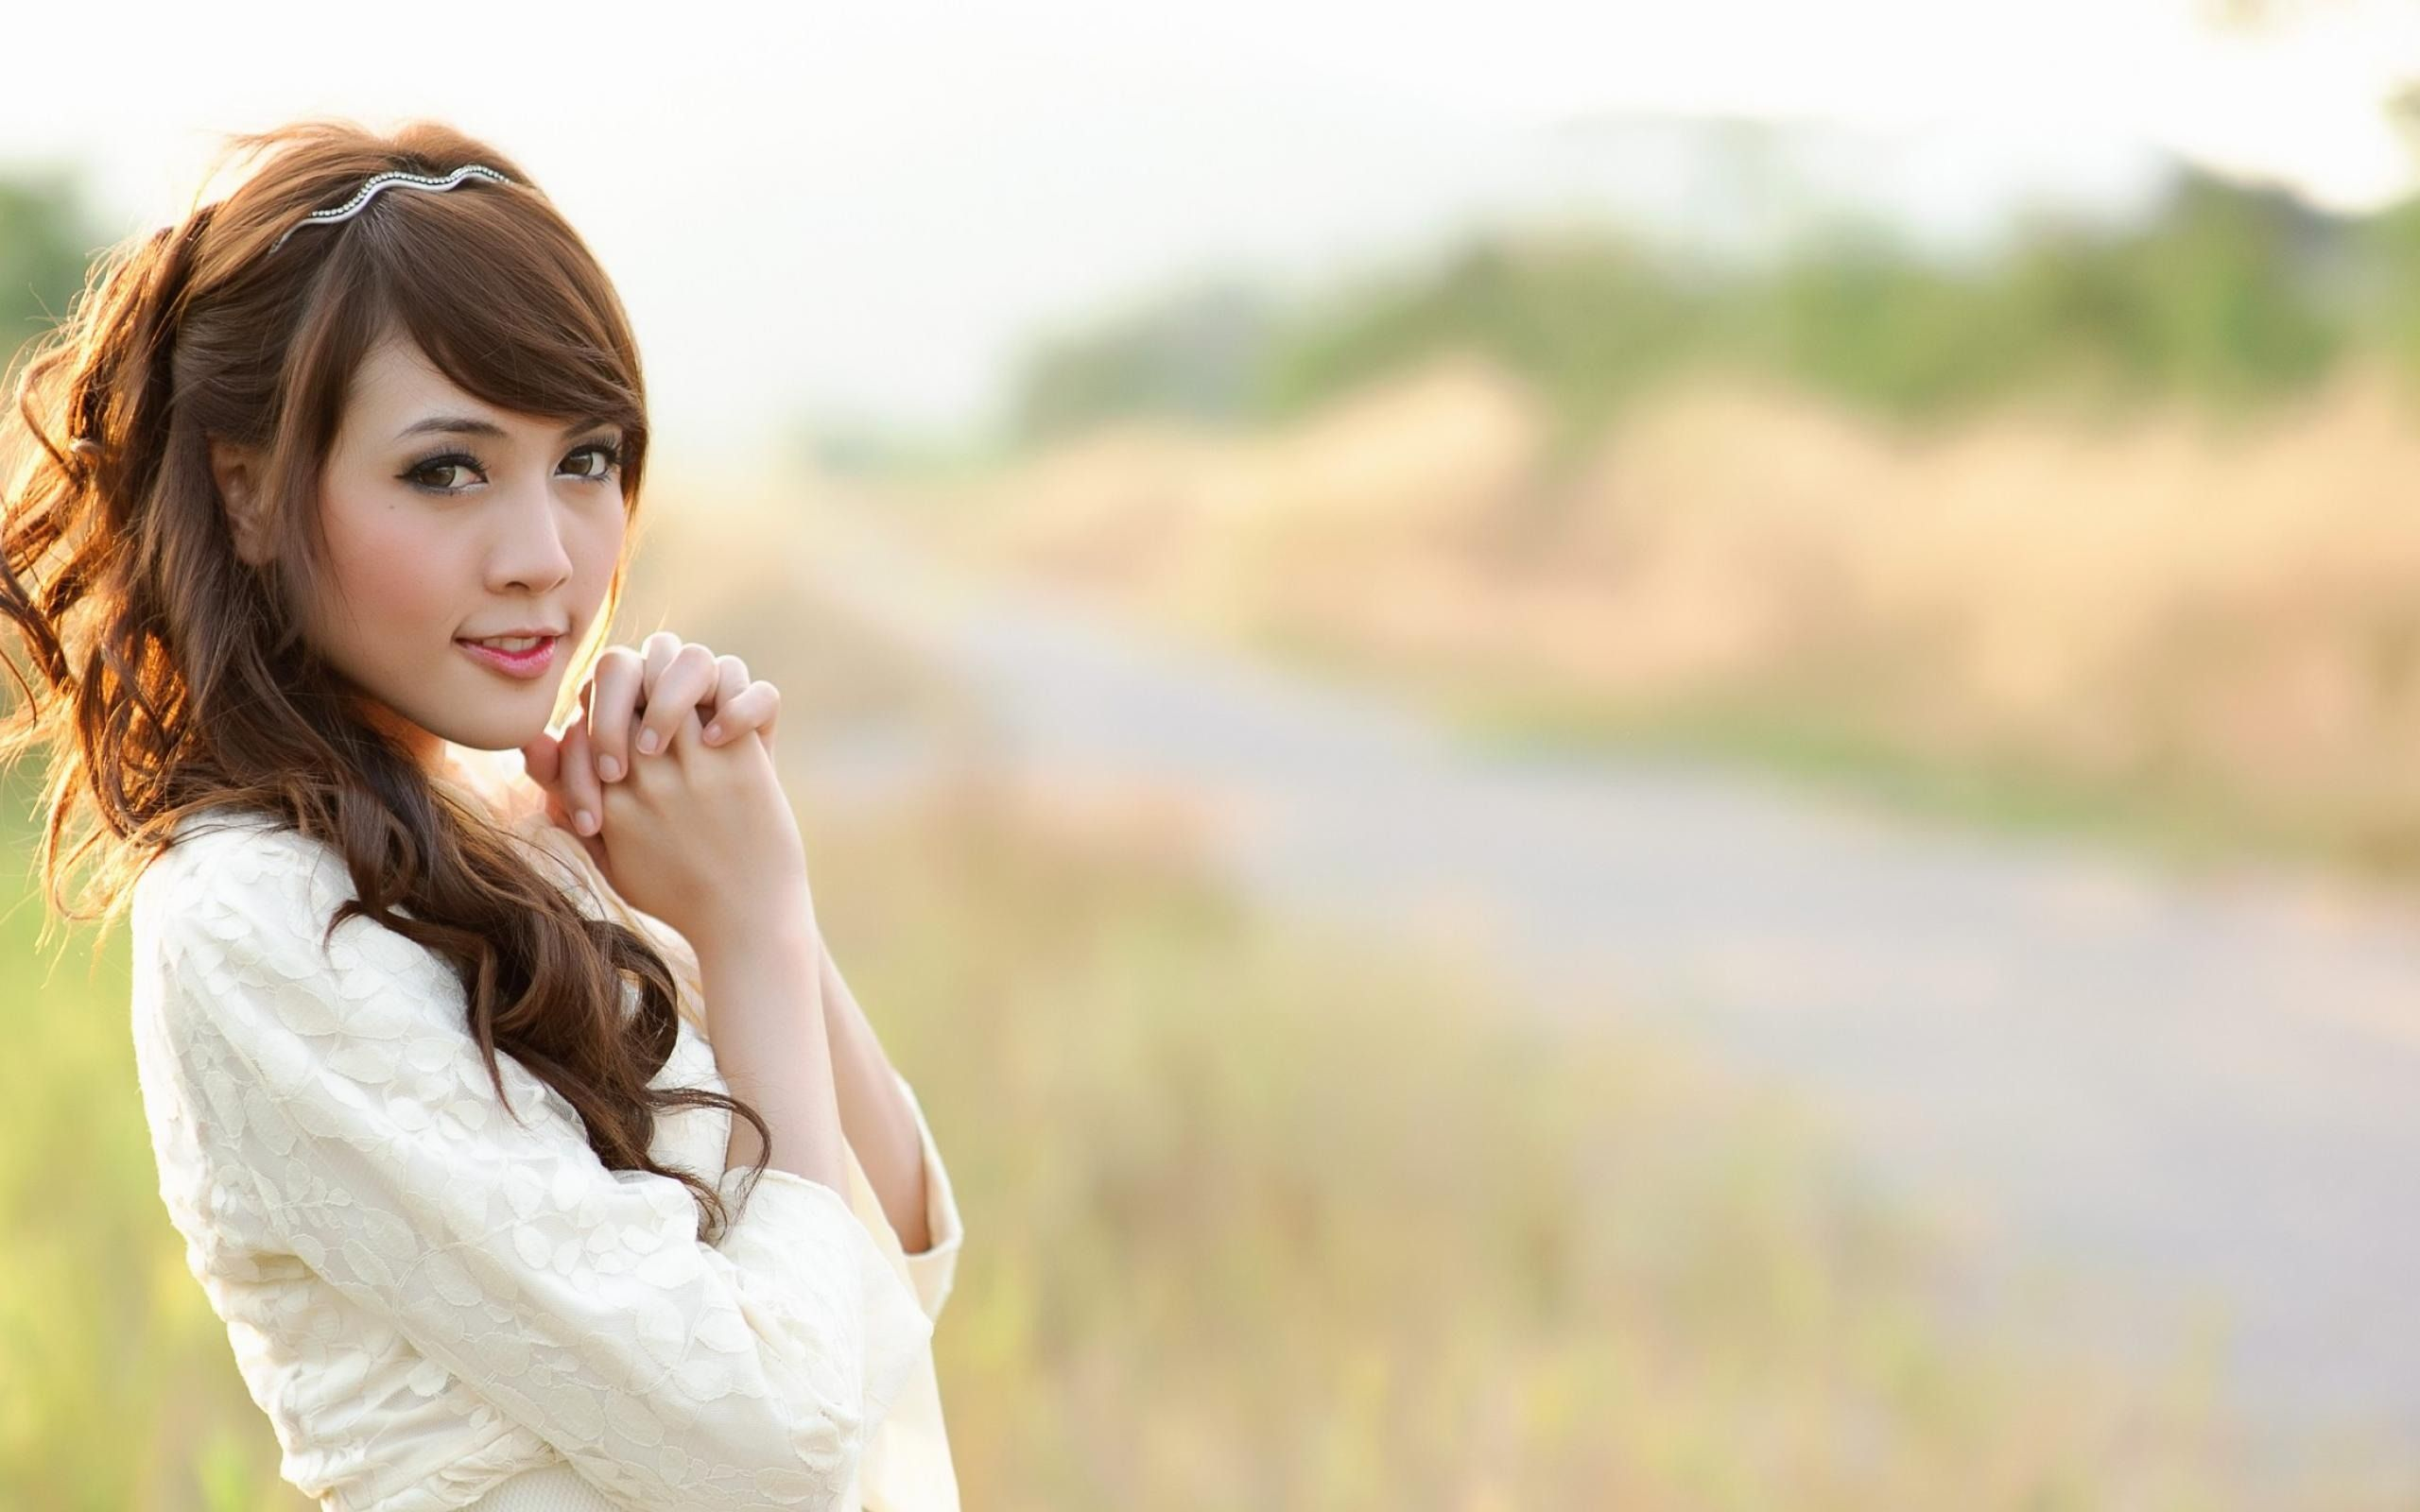 Beautiful asian girl wallpaper latest awesome download Photo of a beautiful girl